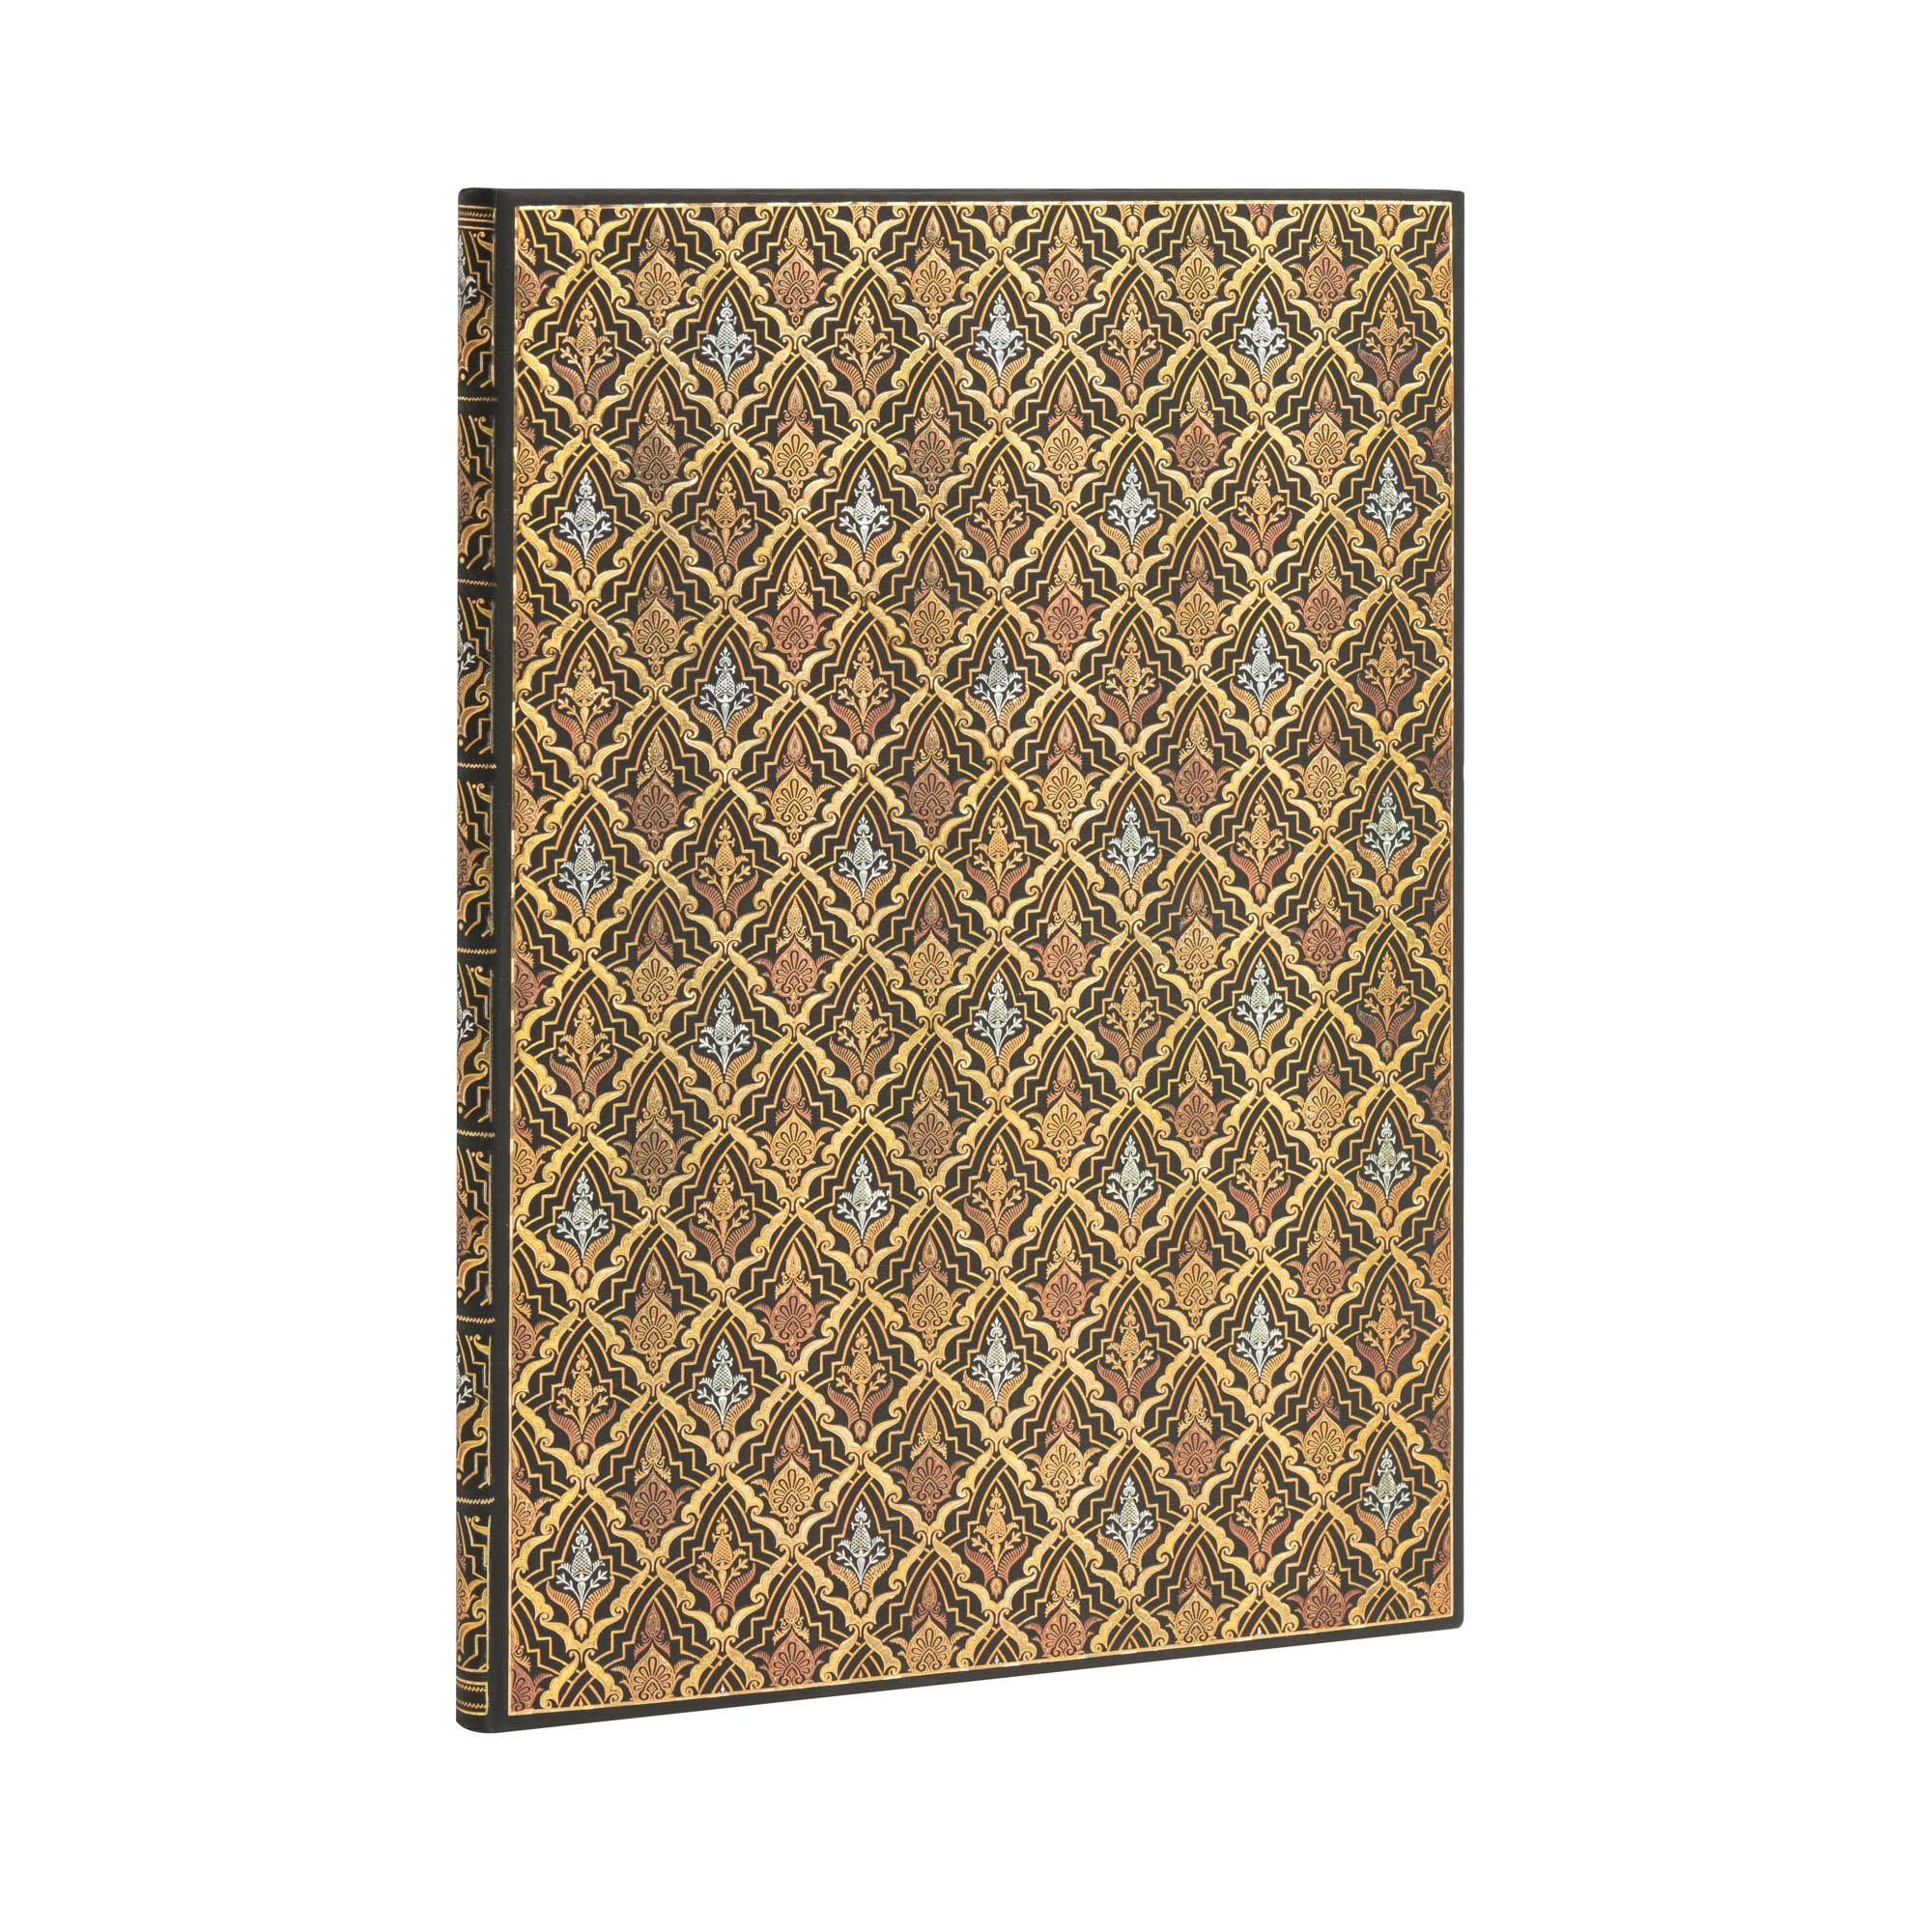 Paperblanks Voltaire Destiny Grande 8.25 x 11.75 Inch Journal